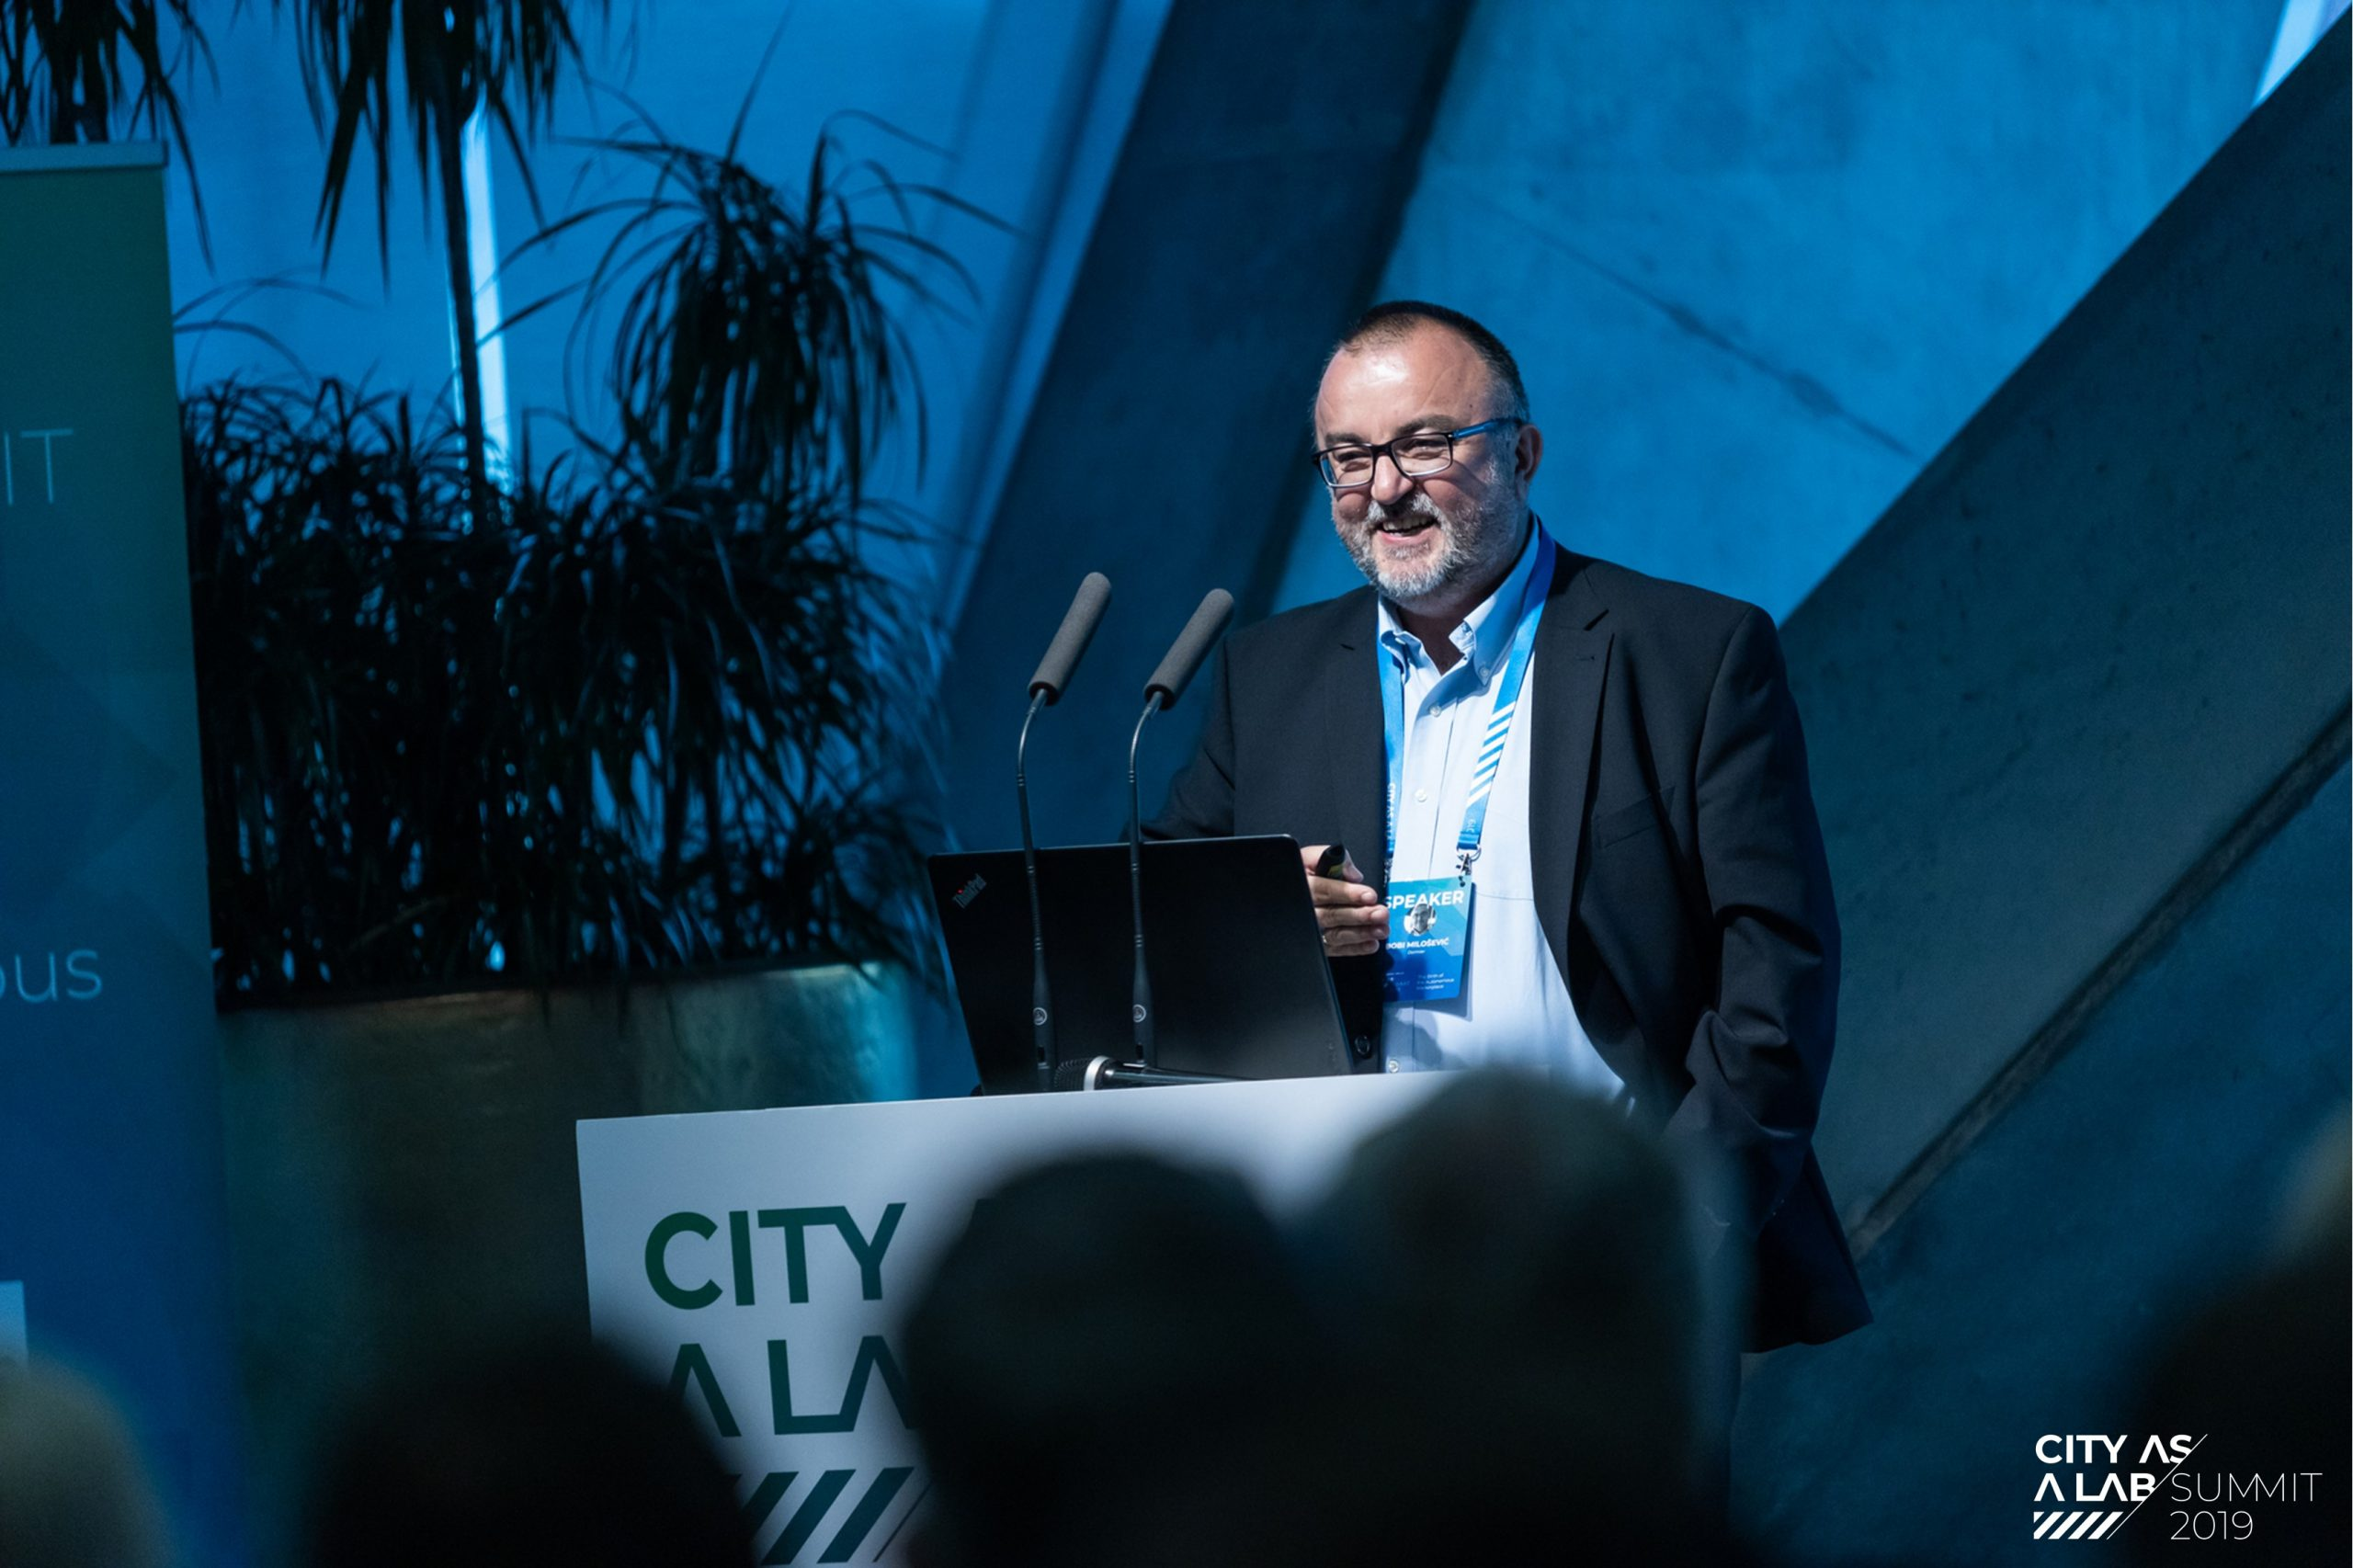 Bobi Milošević, City as a Lab Summit 2019